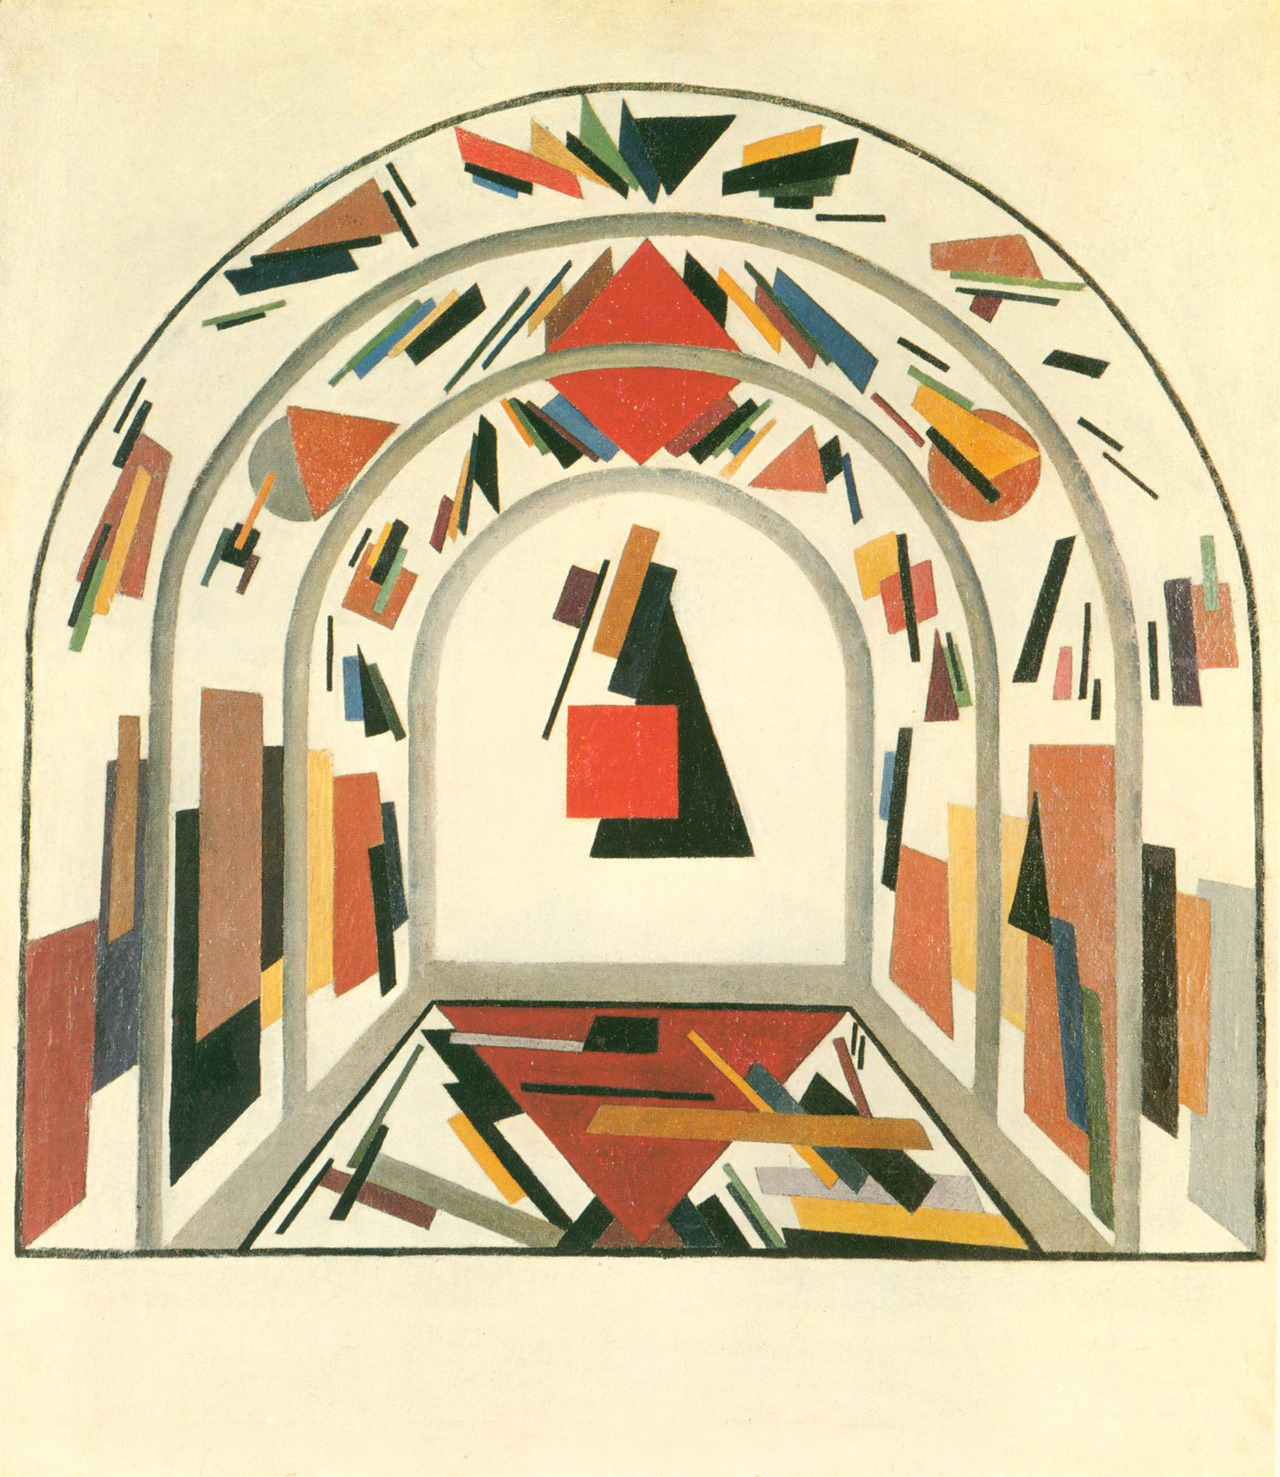 Ivan Alexeevich Kudriashev, General Plan for the Interior Decoration of the First Soviet Theater in Orenburg, Russia 1920